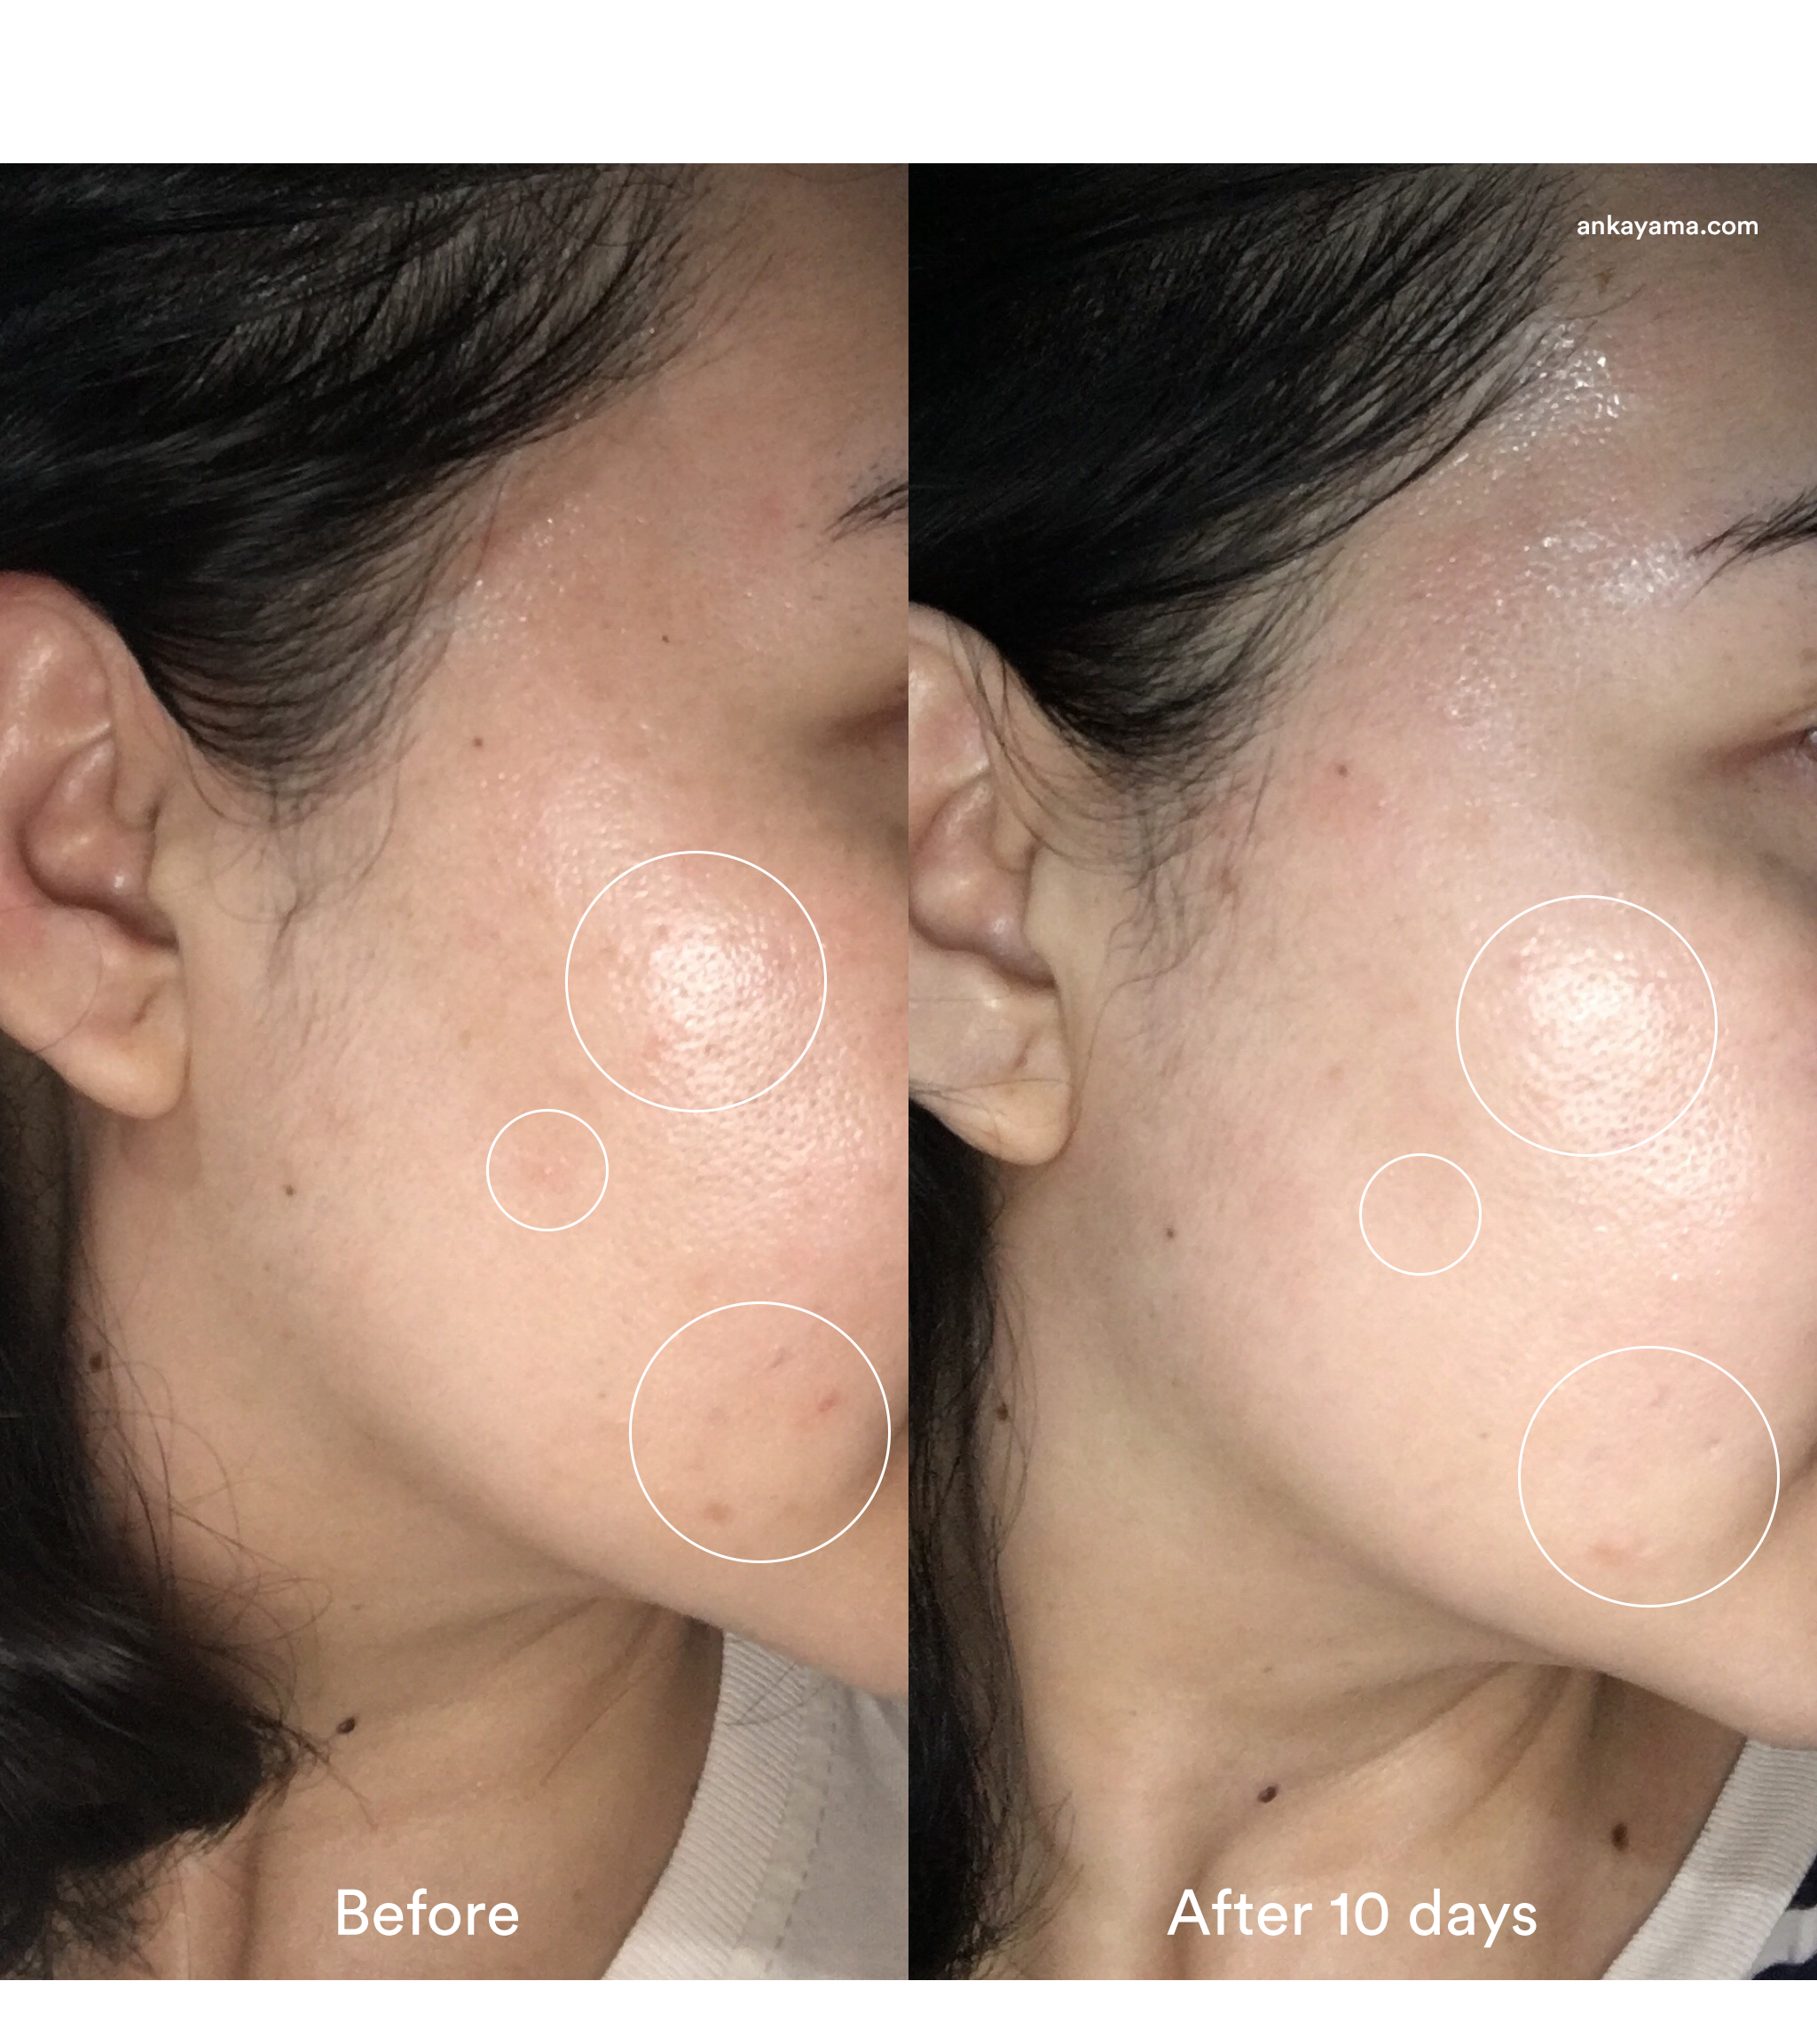 Before After Clinique Fresh Pressed - Ankayama